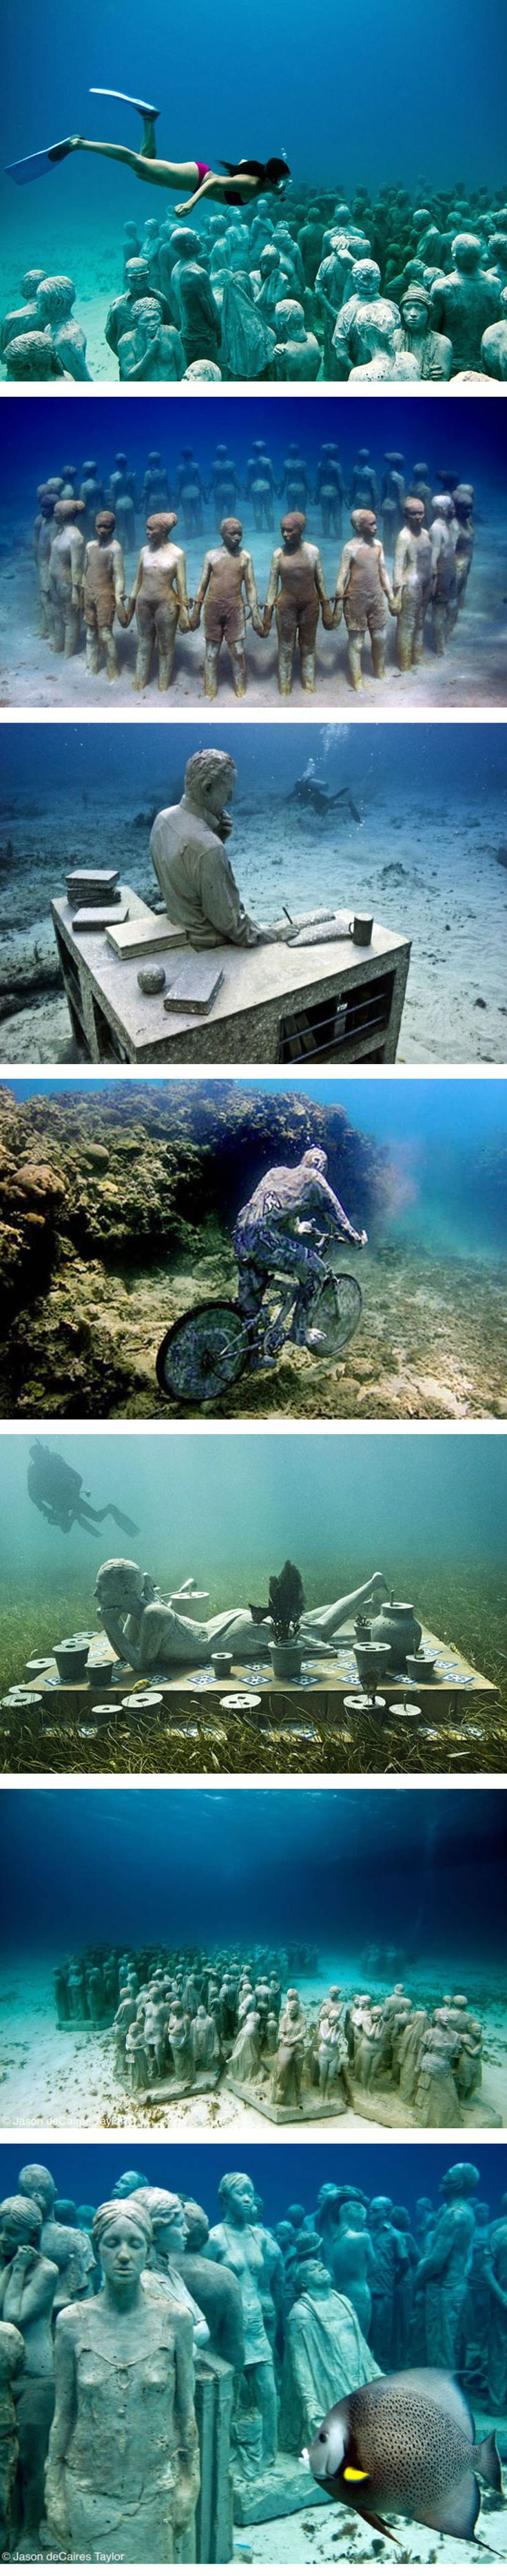 Diving at the Underwater museum in Cancun, Mexico